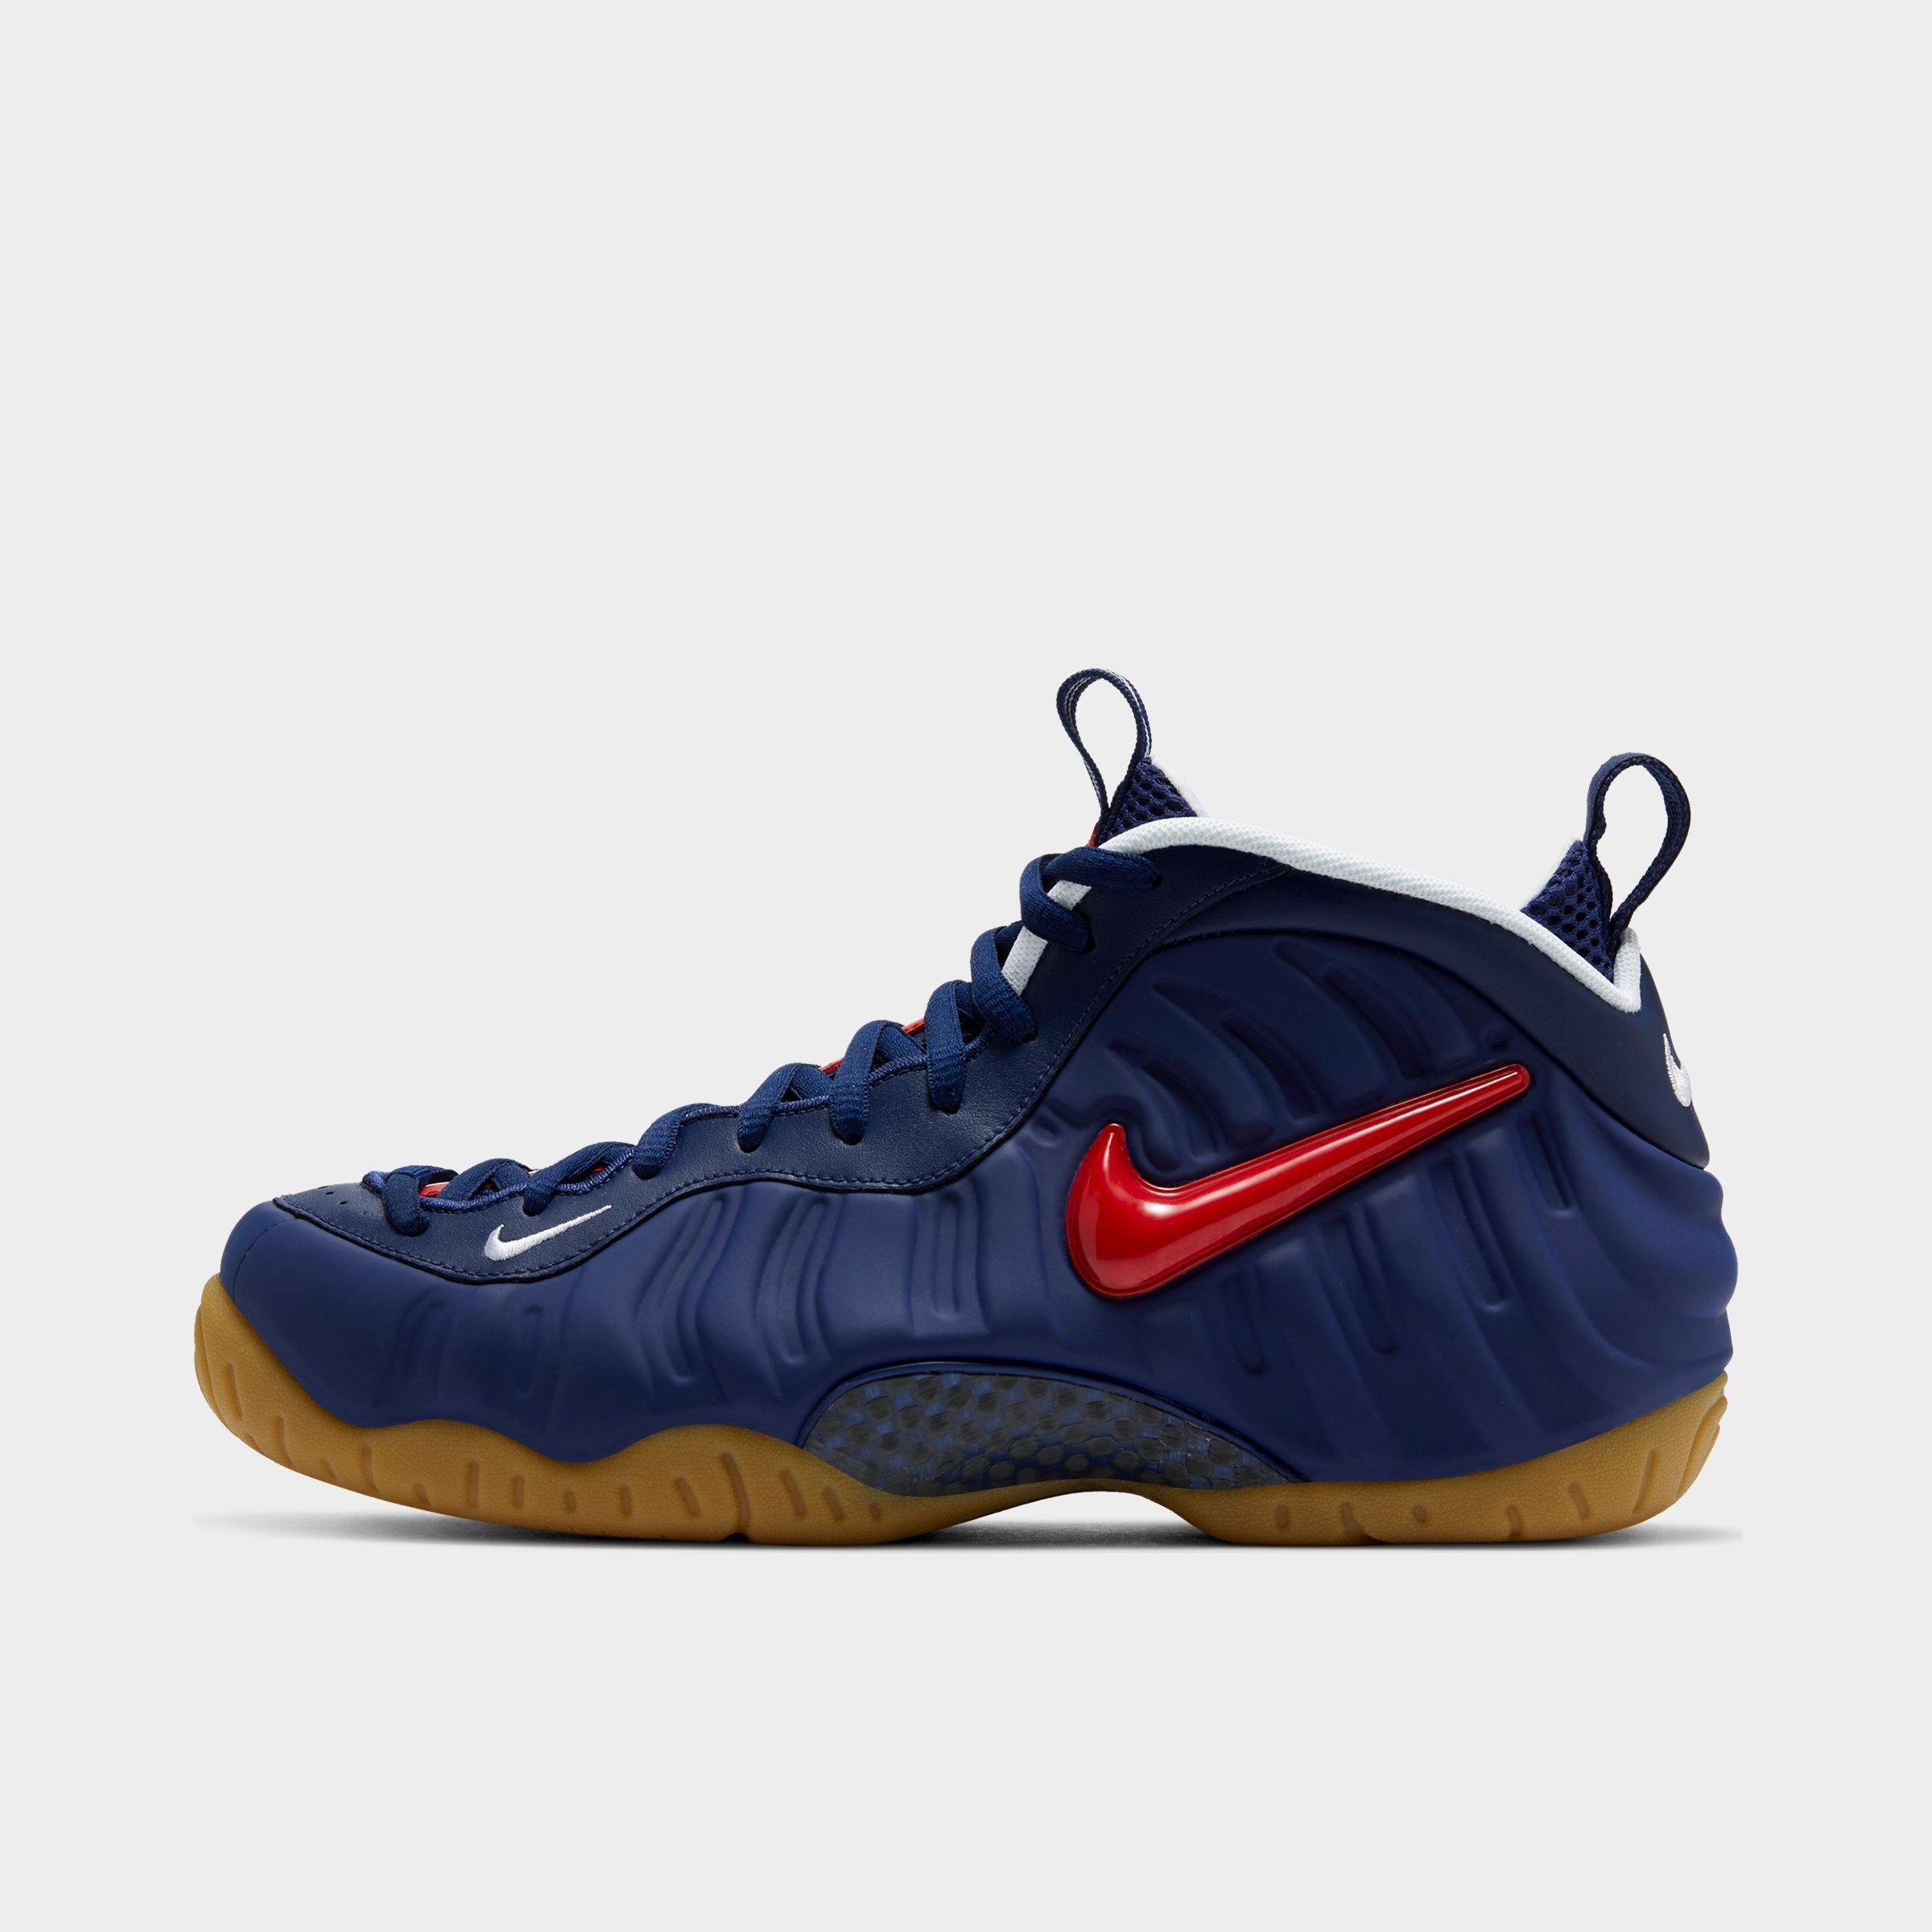 Nike Air Foamposite One Weatherman Sole Collector